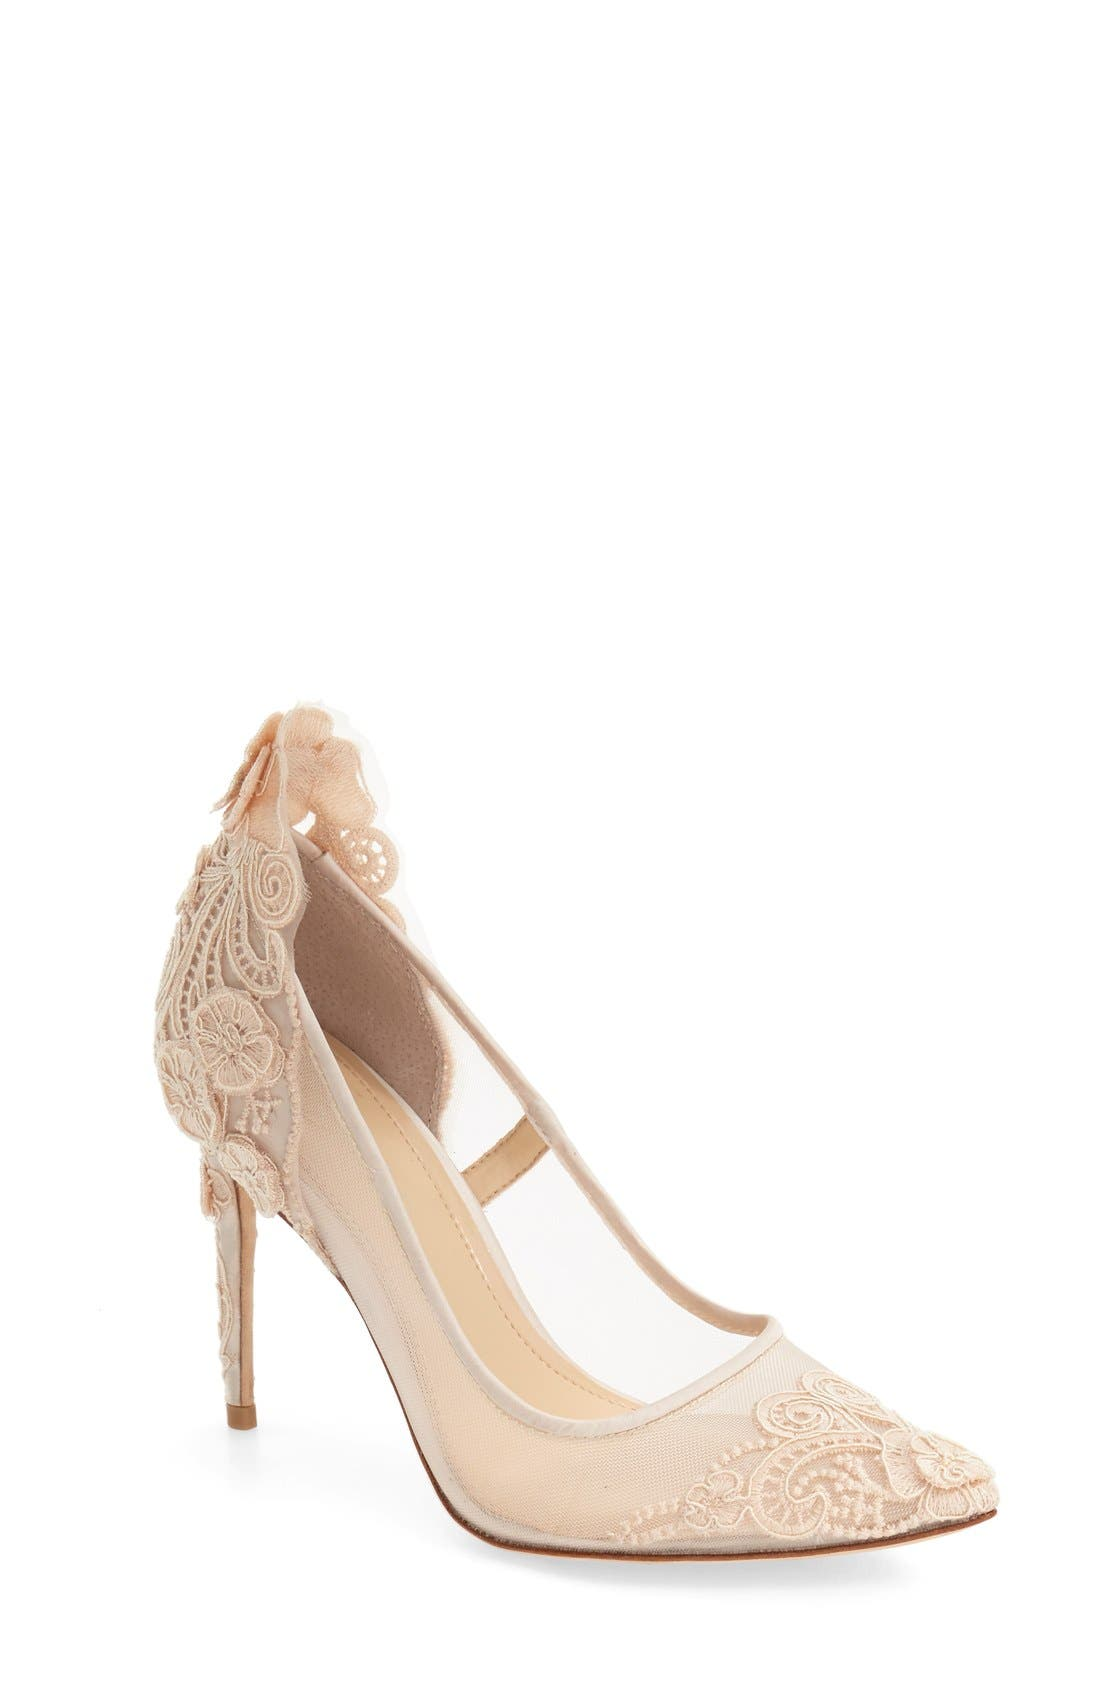 Alternate Image 1 Selected - Imagine by Vince Camuto 'Ophelia' Pointy Toe Pump (Women)